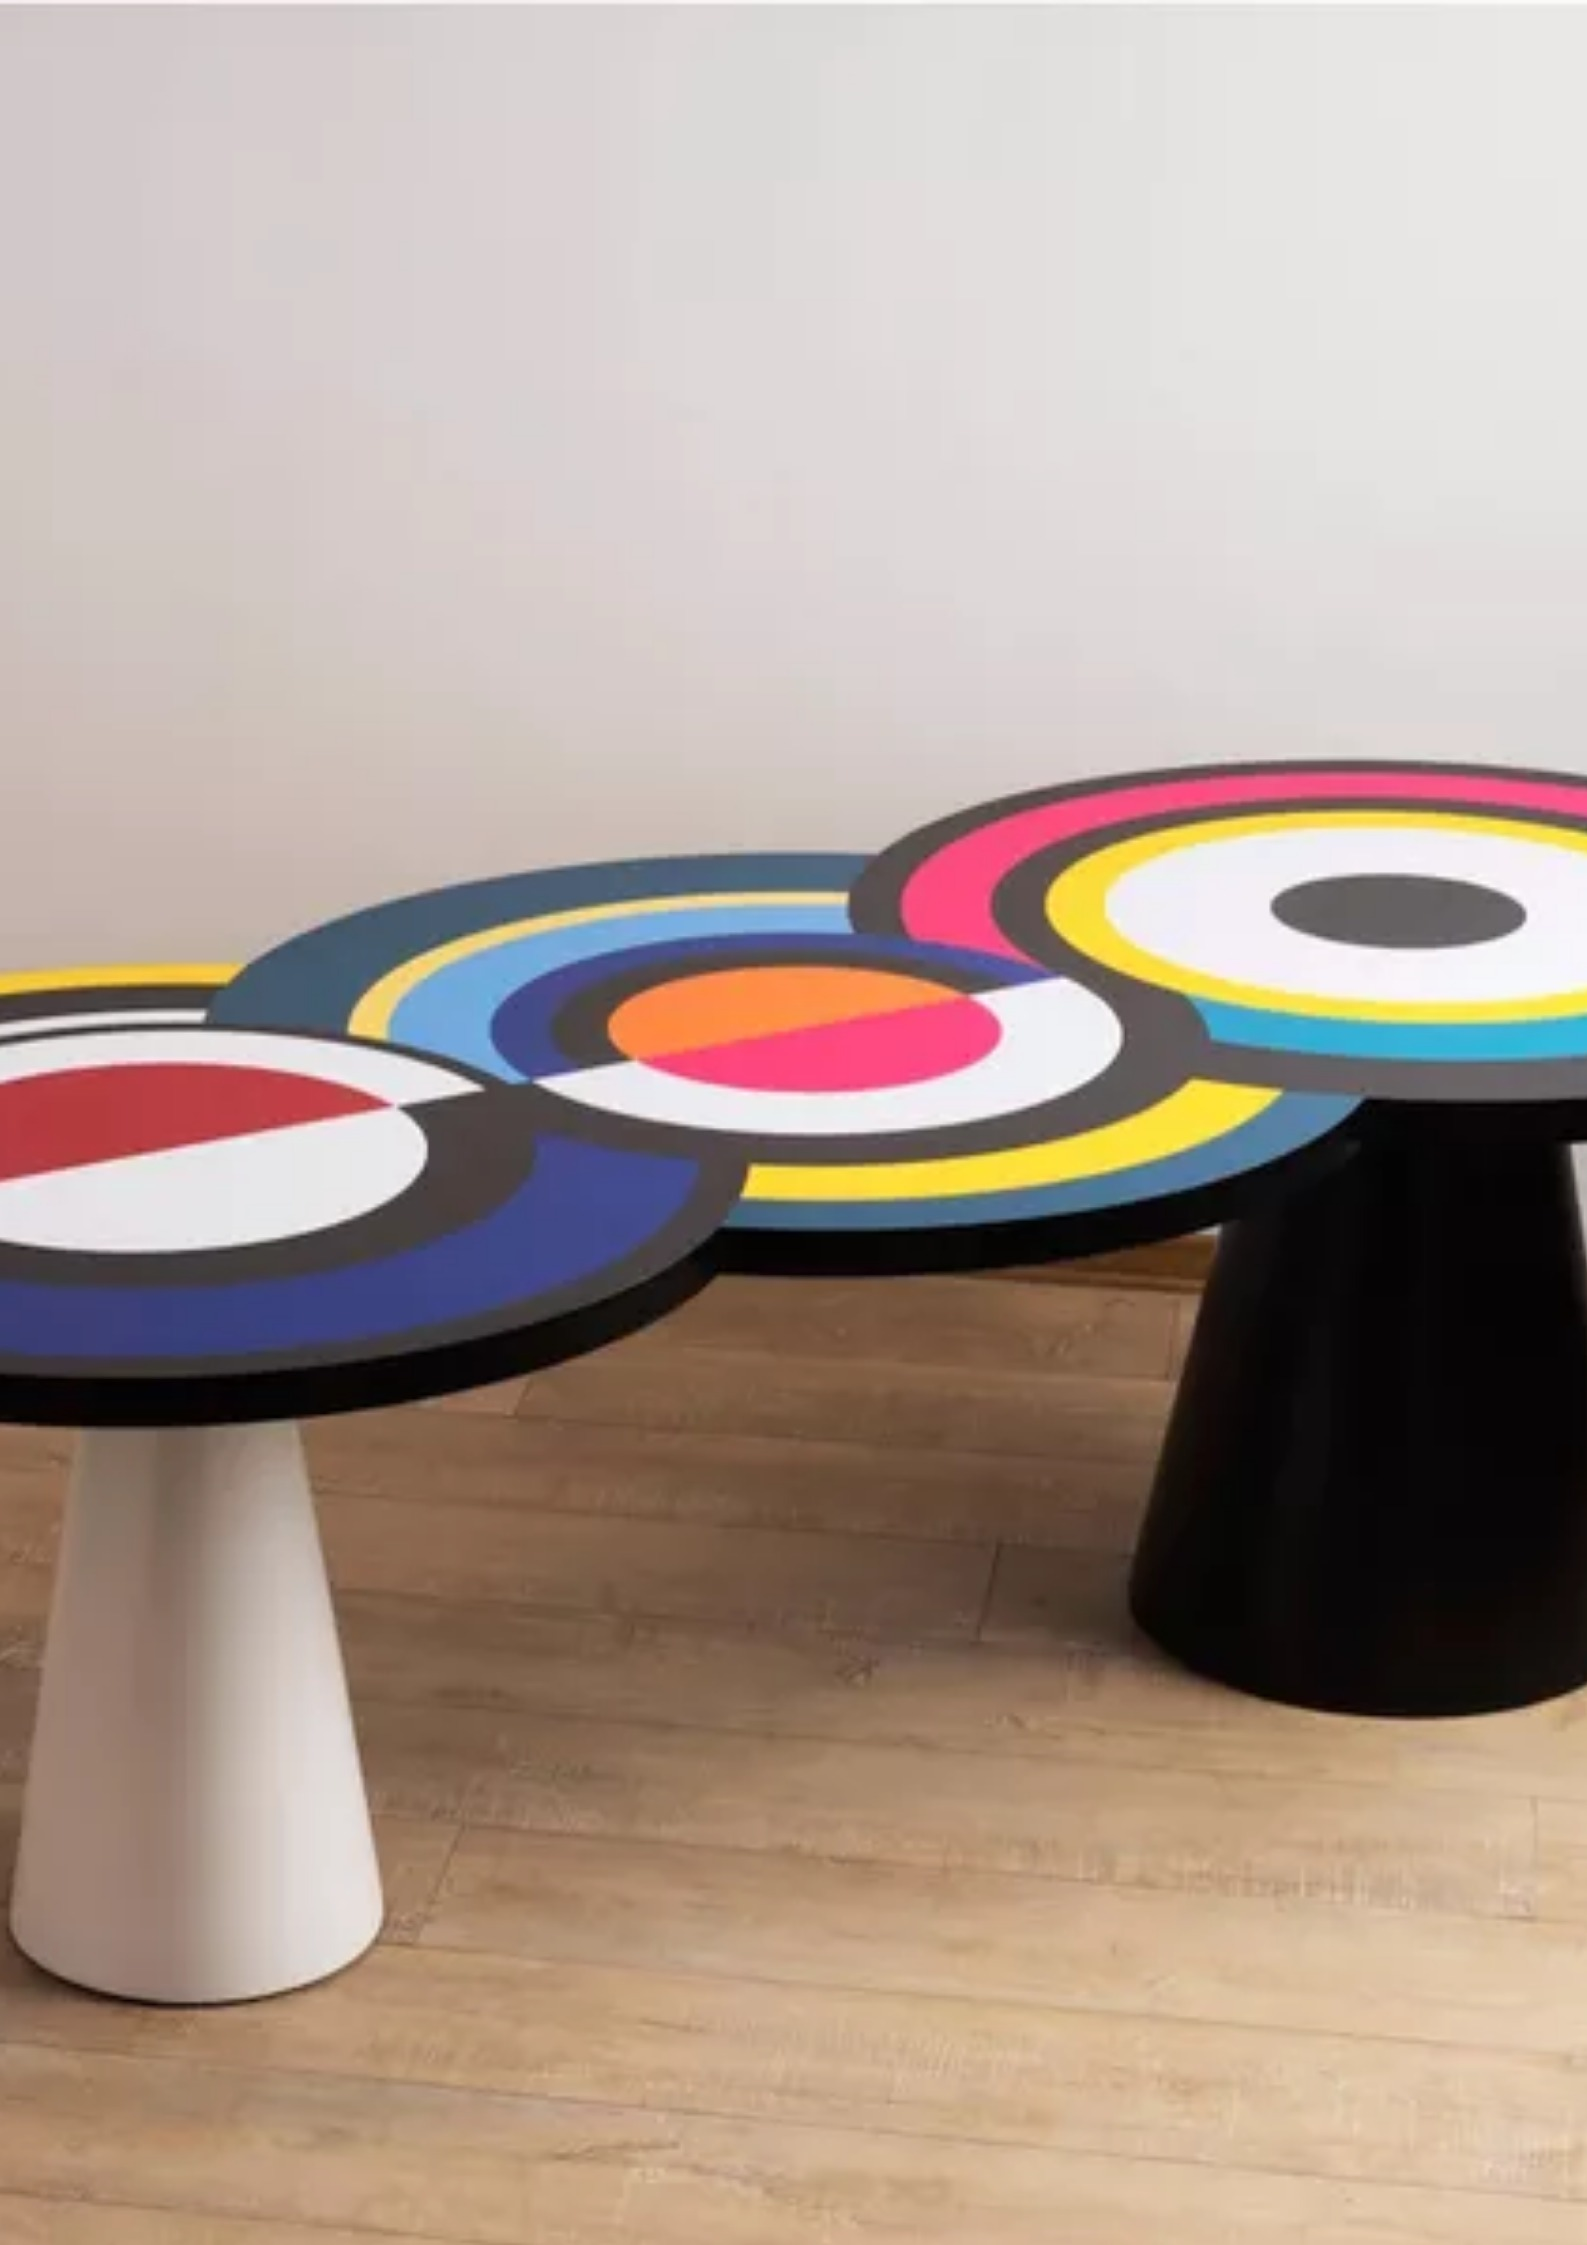 Art-Inspired Furniture - 08